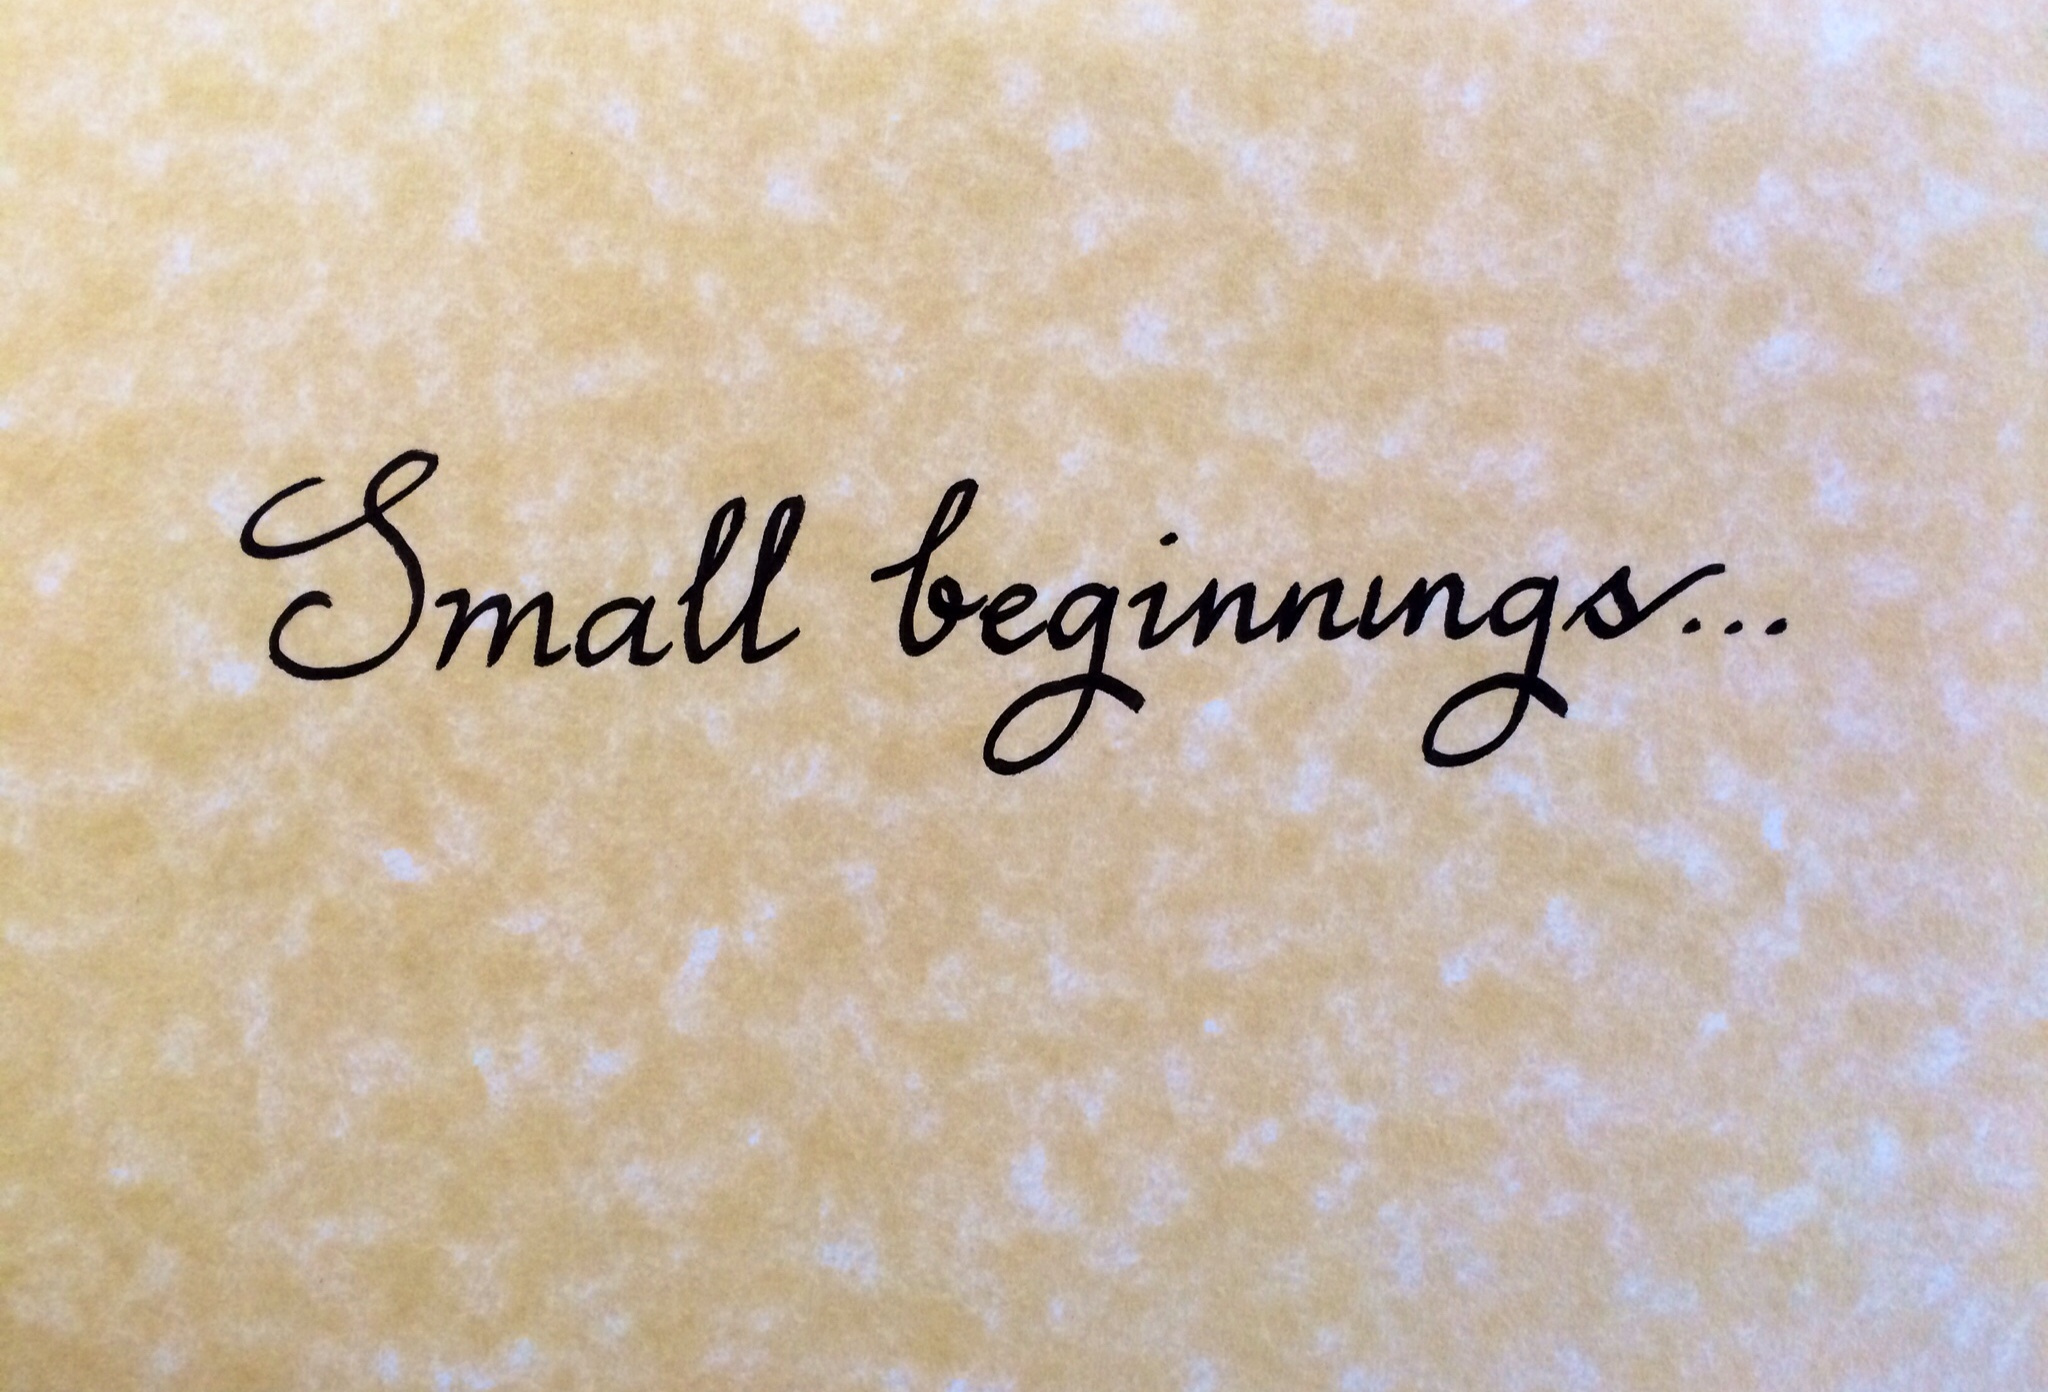 small-beginnings.jpg